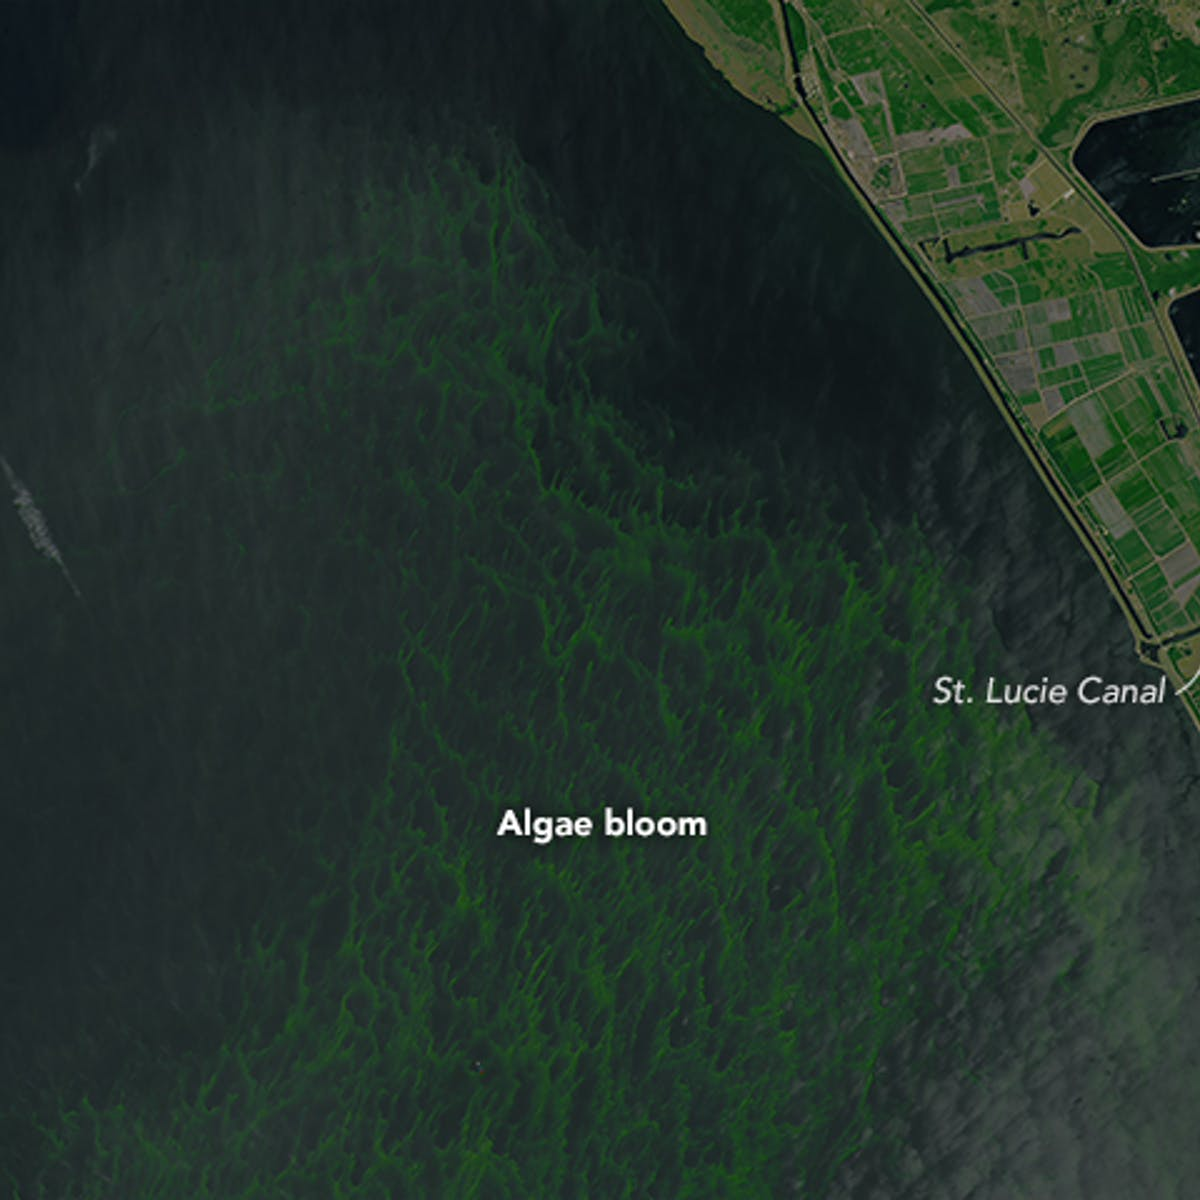 Why toxic algae blooms like Florida's are so dangerous to people and